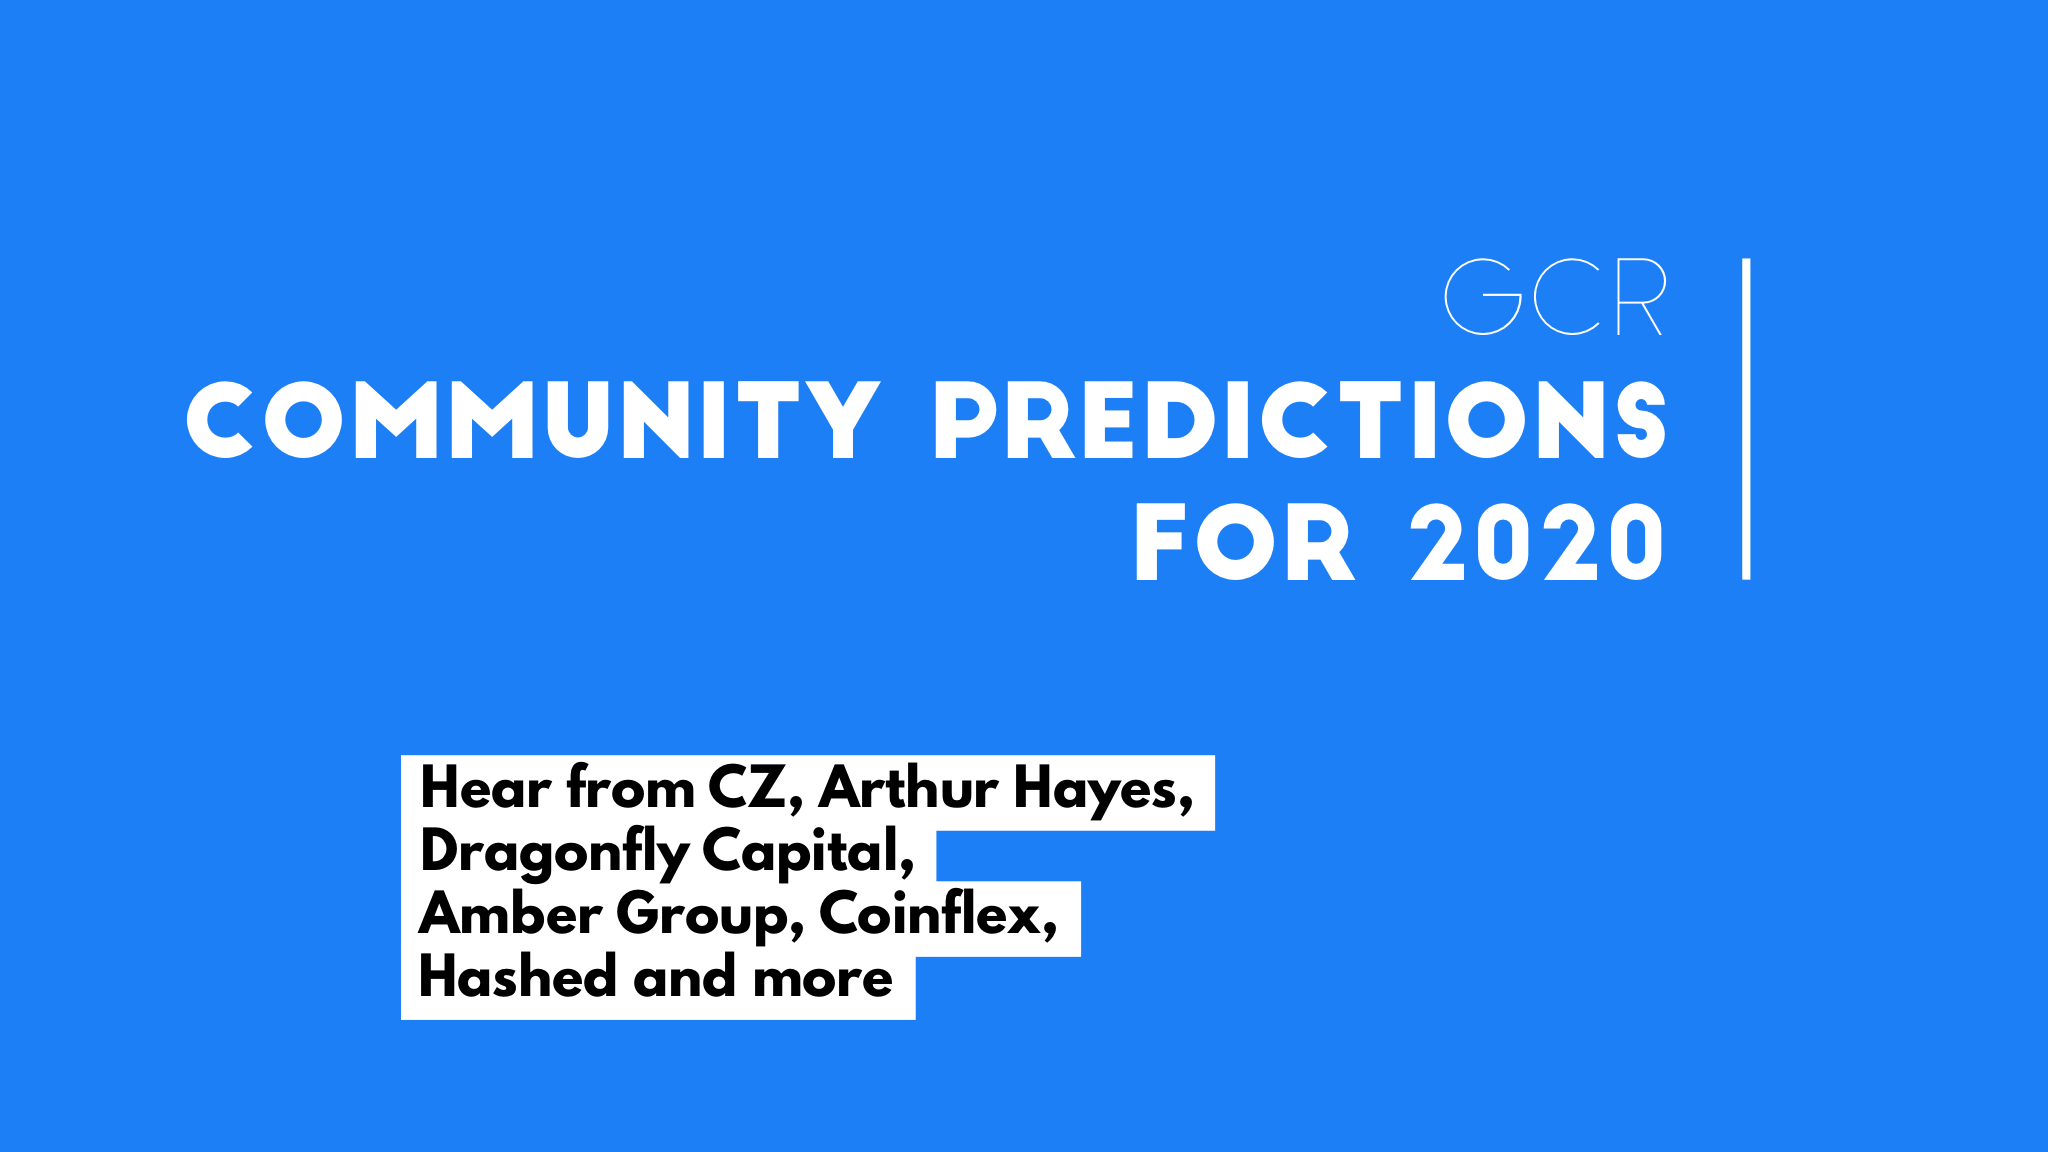 GCR 2020 community predictions